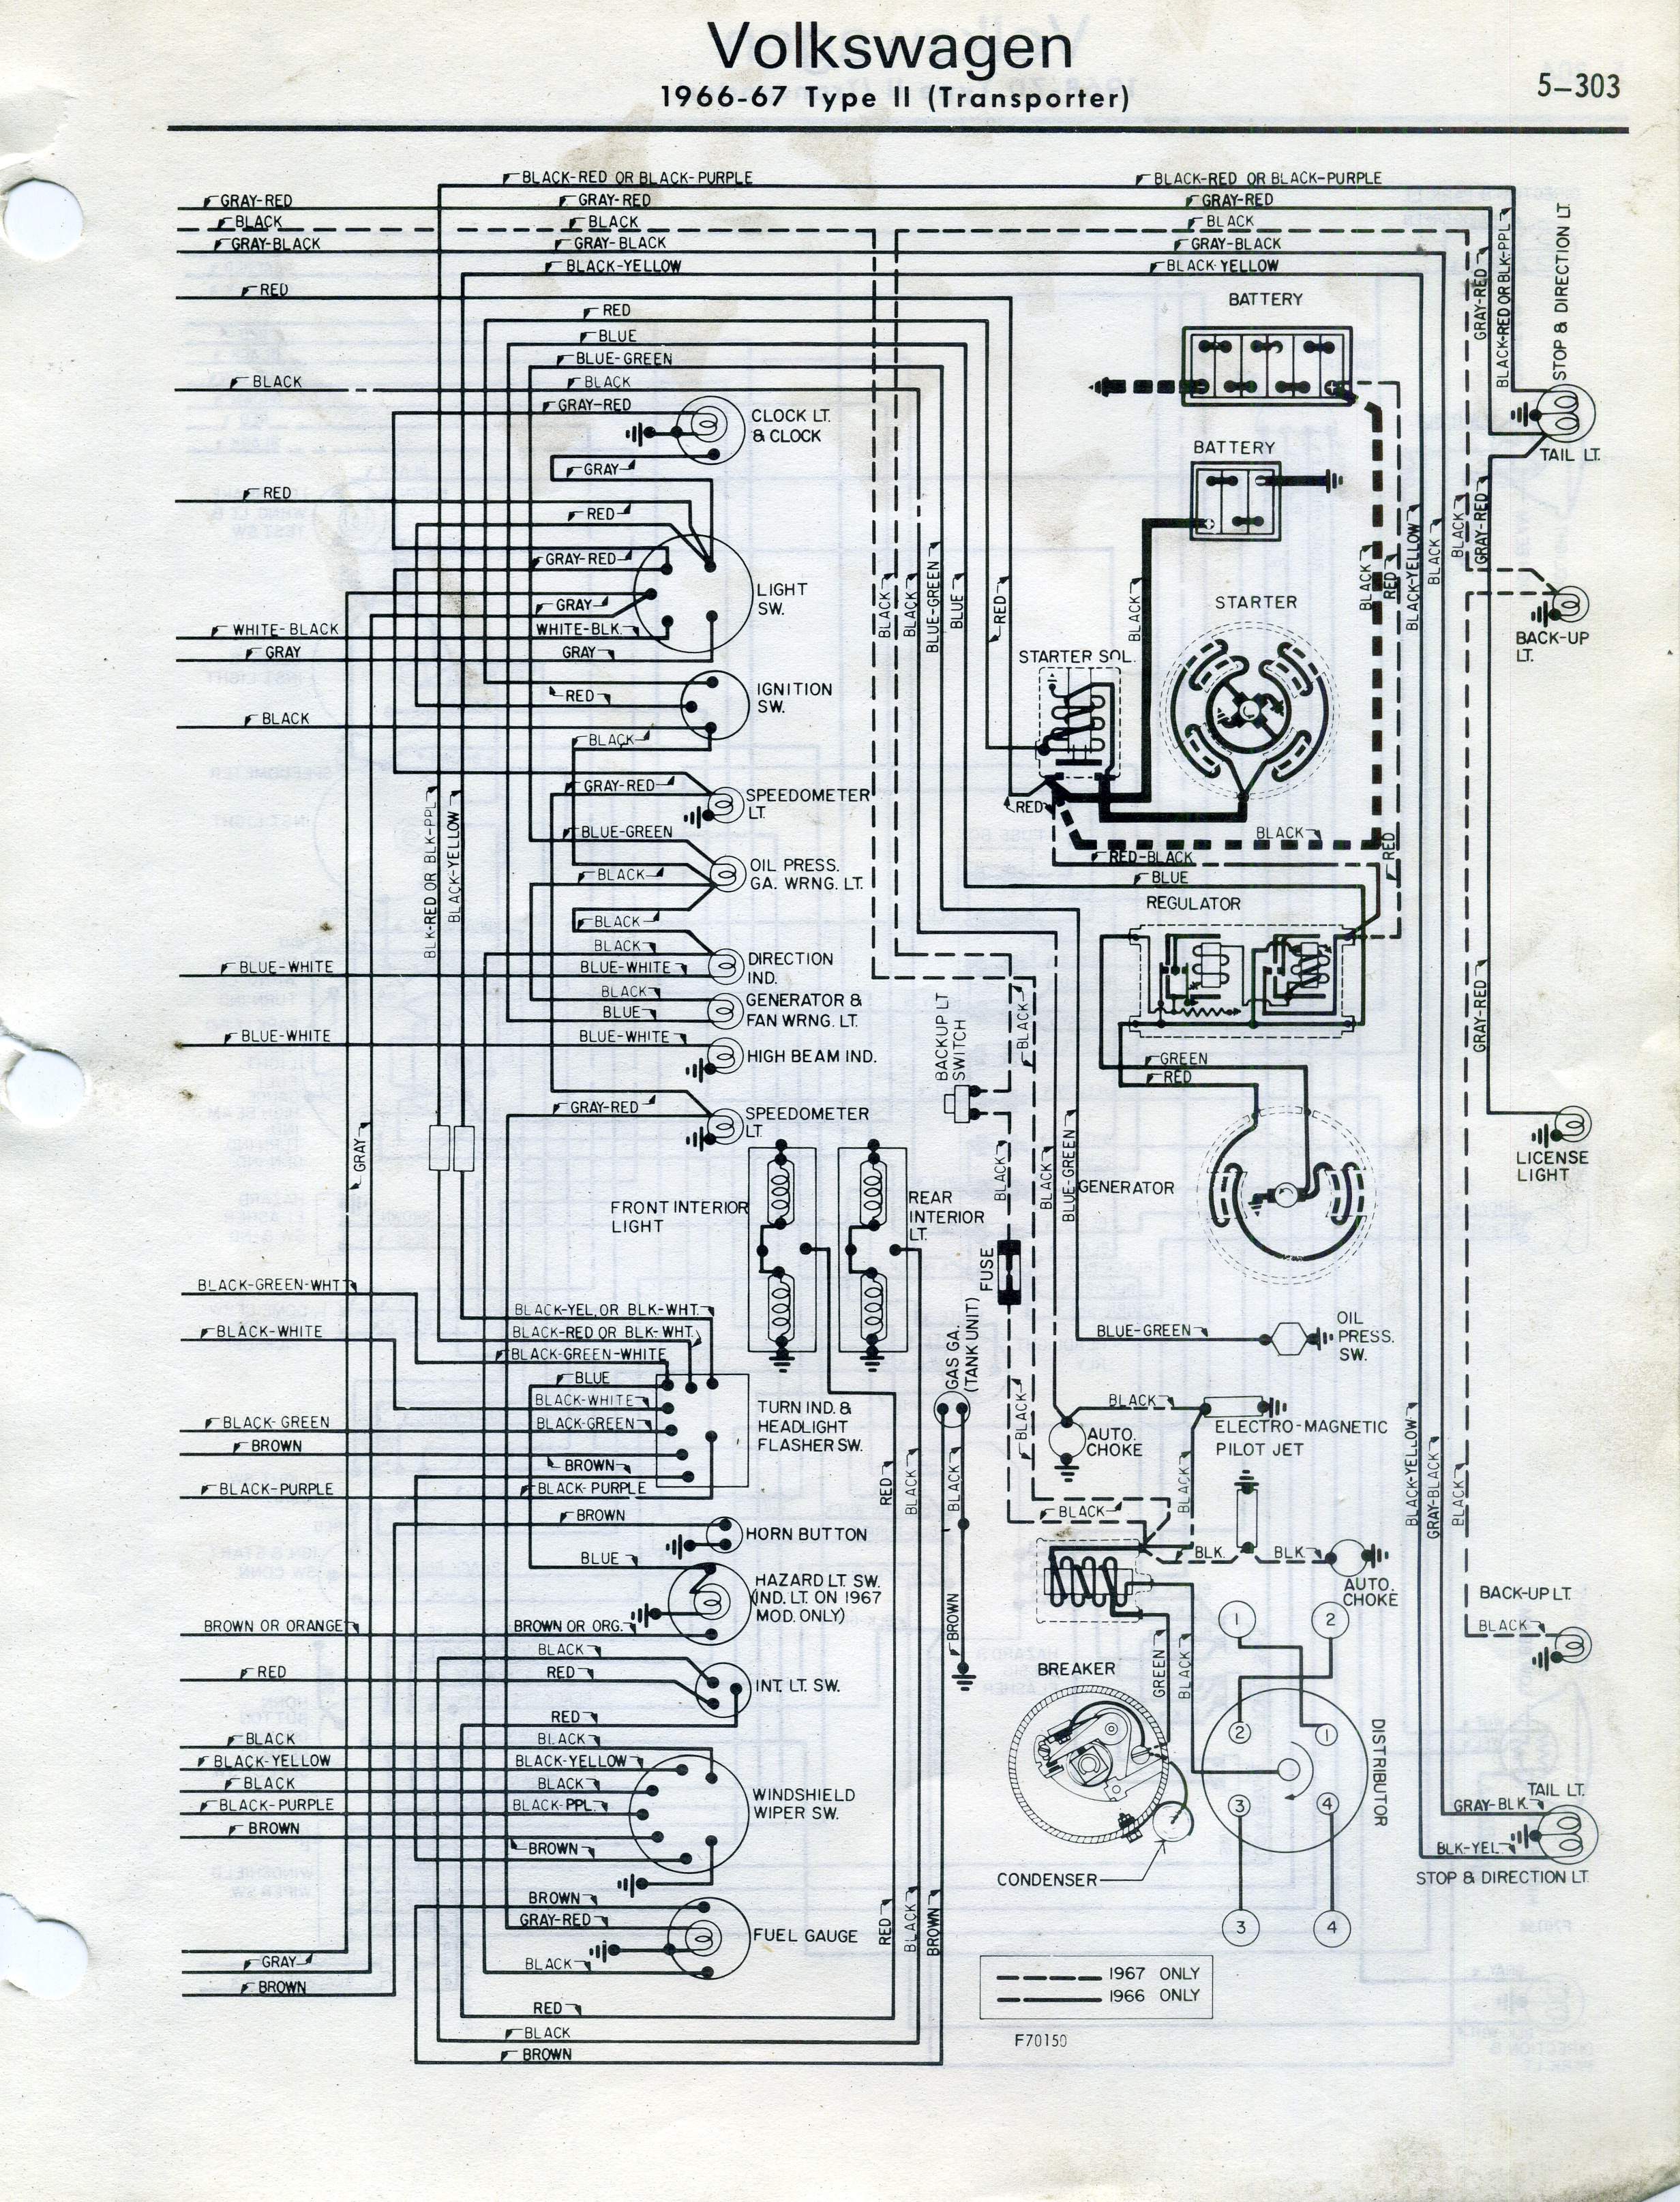 chevy wiring diagrams chevy image wiring diagram 67 chevy wiring diagrams jodebal com on chevy wiring diagrams